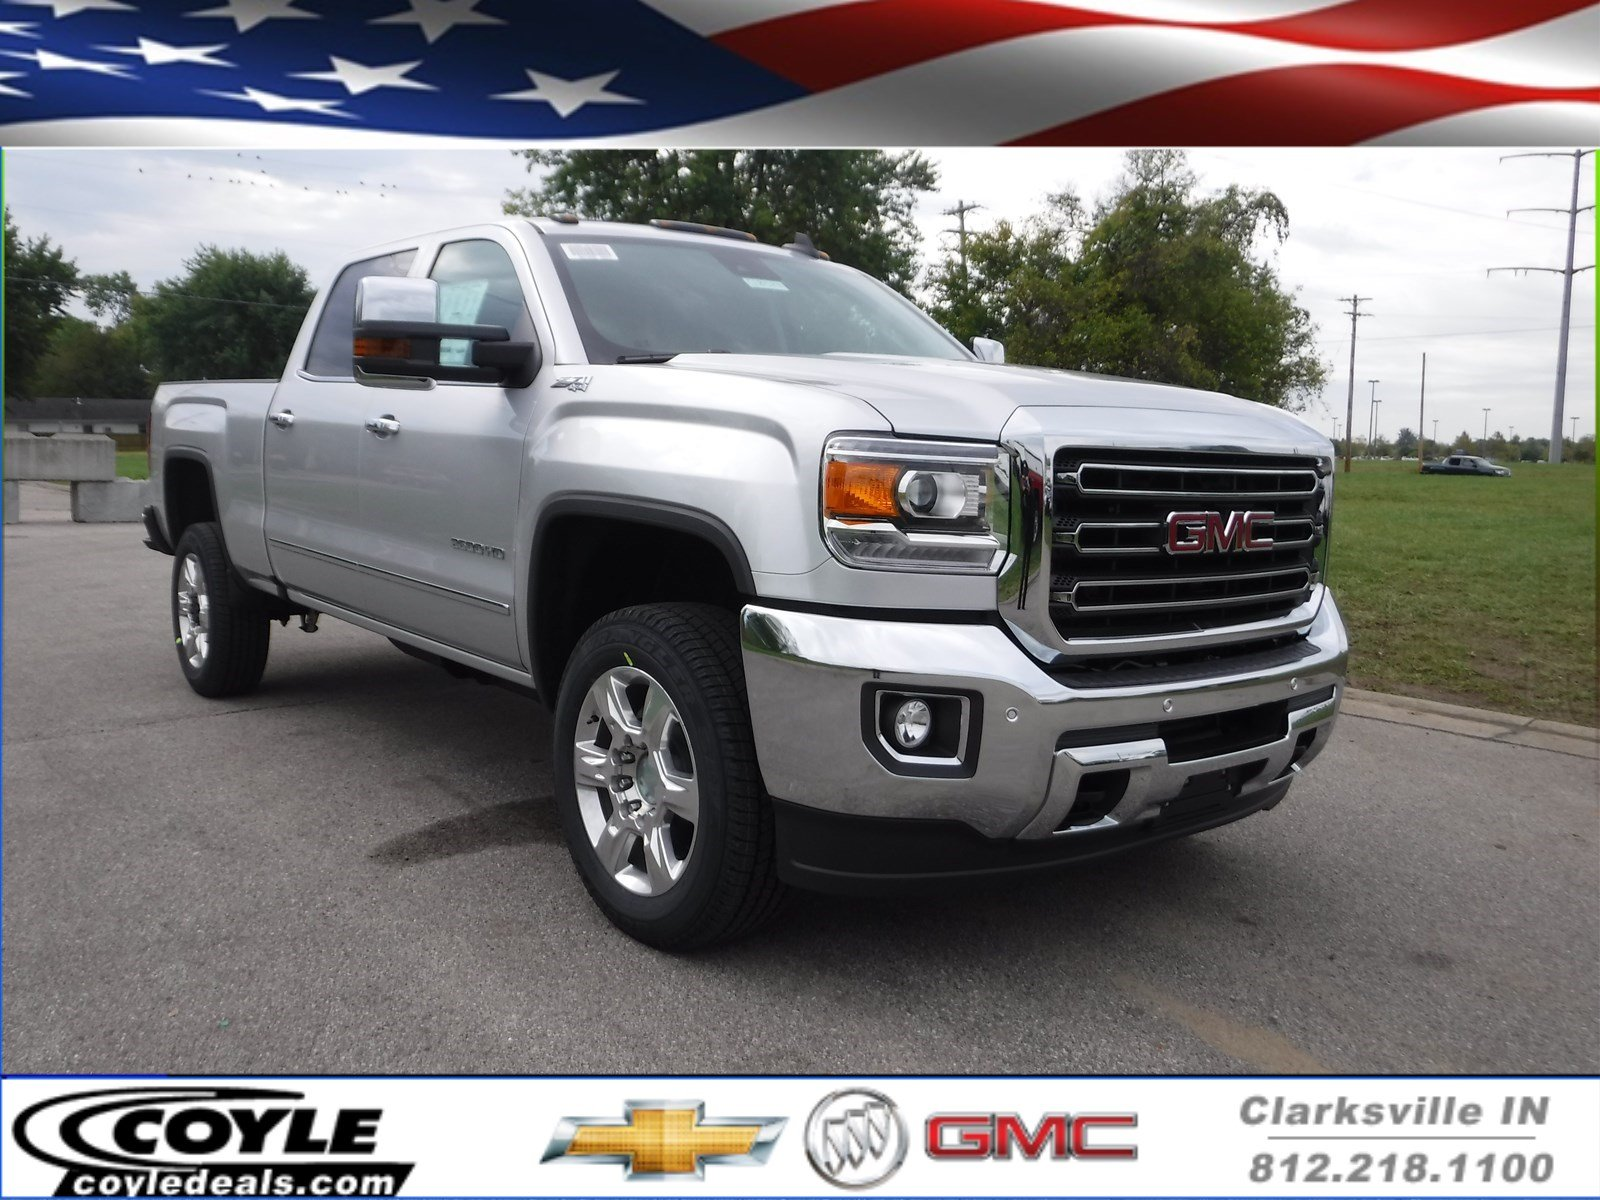 New 2018 Gmc Sierra 2500hd Slt Crew Cab Pickup In Clarksville